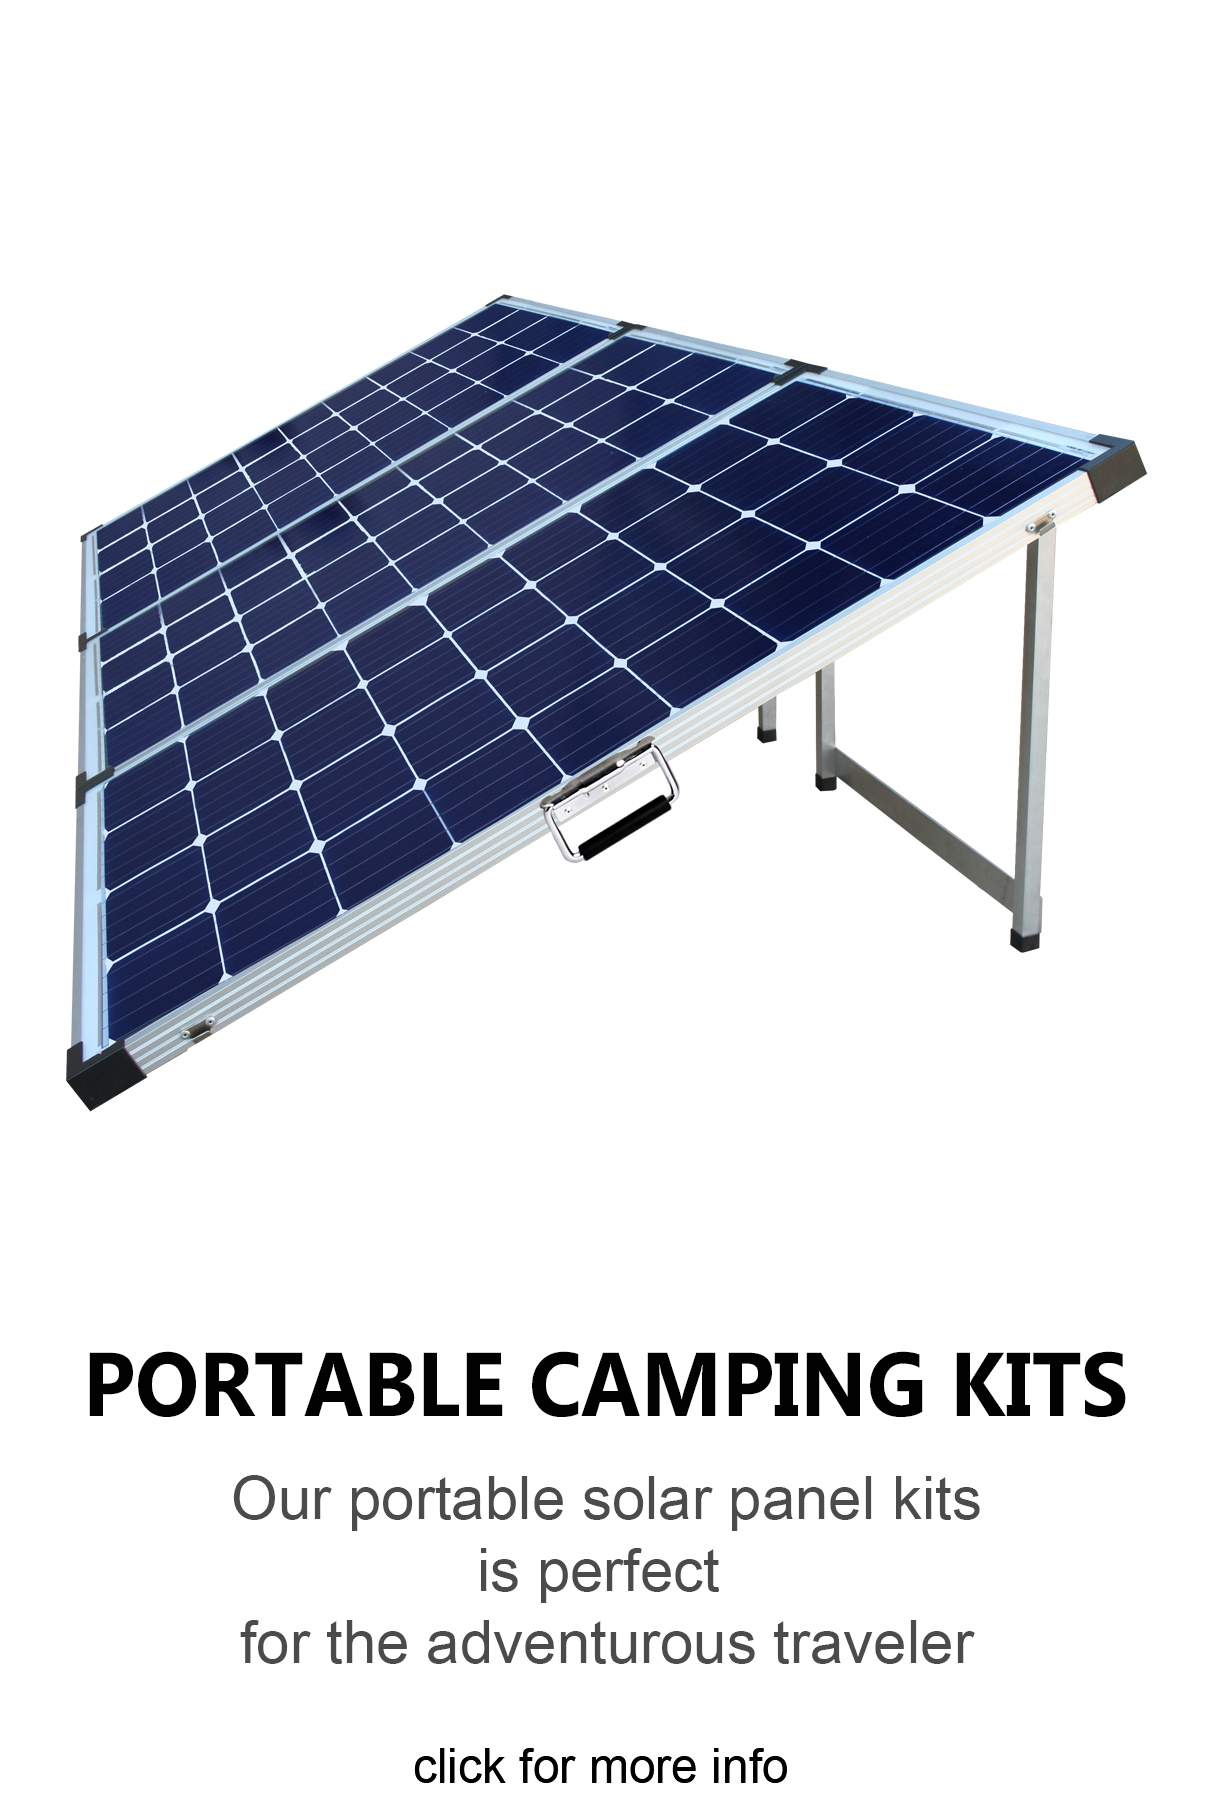 foldable solar panels for camping Bloemfontein south africa, portable camping folding solar panels Bloemfontein south africa, Bloemfontein south africa portable solar panels for camping south africa.